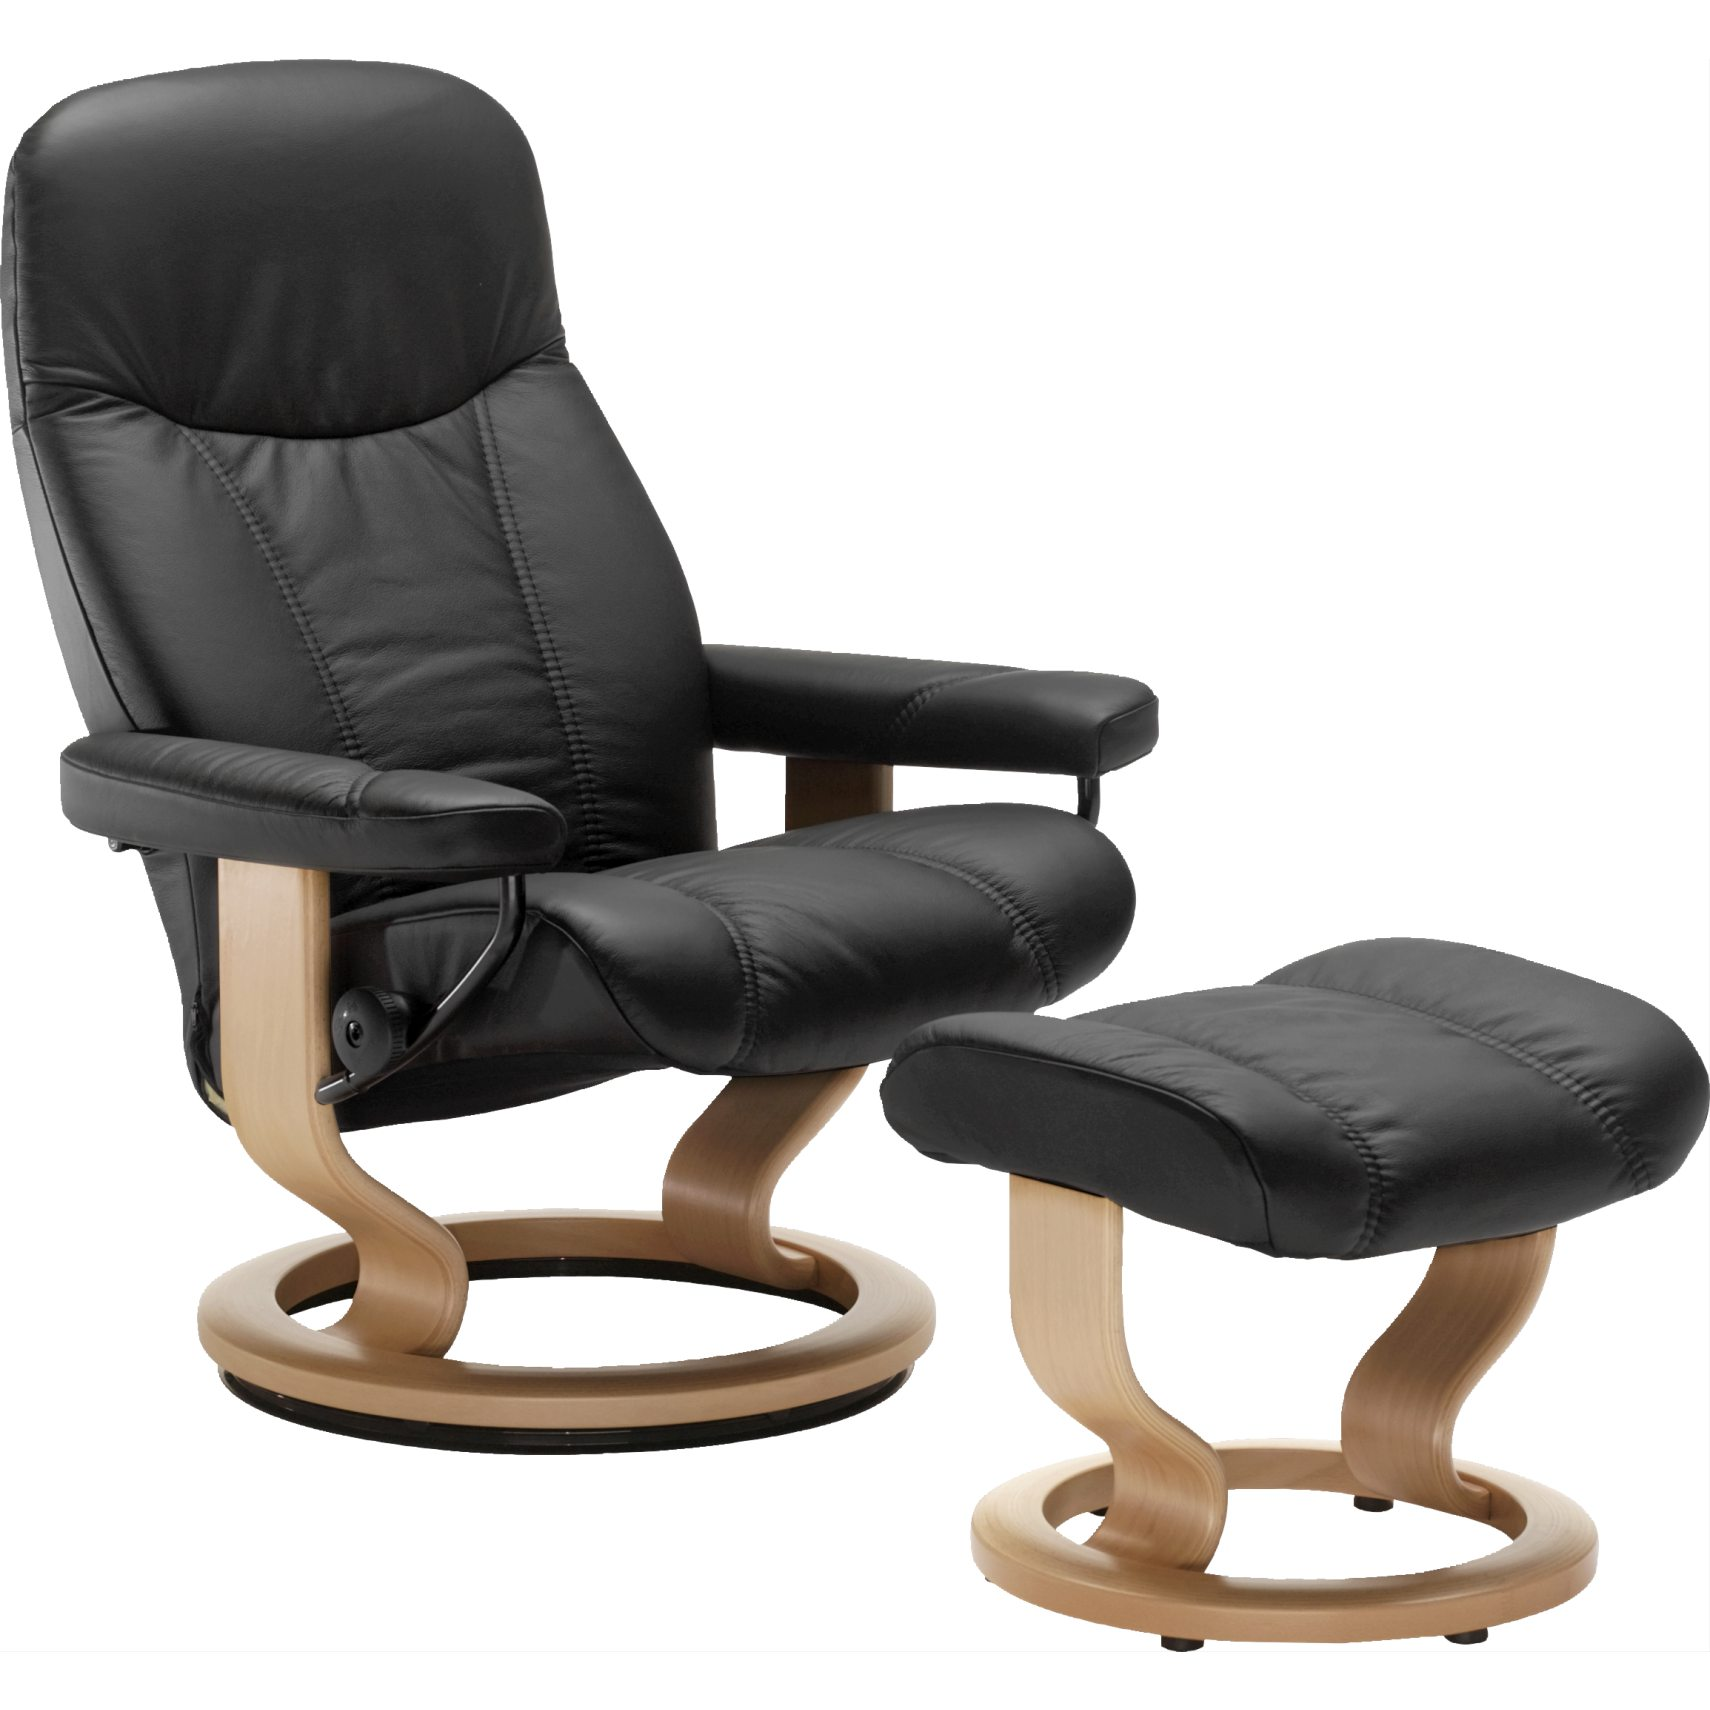 stressless consul m f t lj 7499 sek k p online. Black Bedroom Furniture Sets. Home Design Ideas